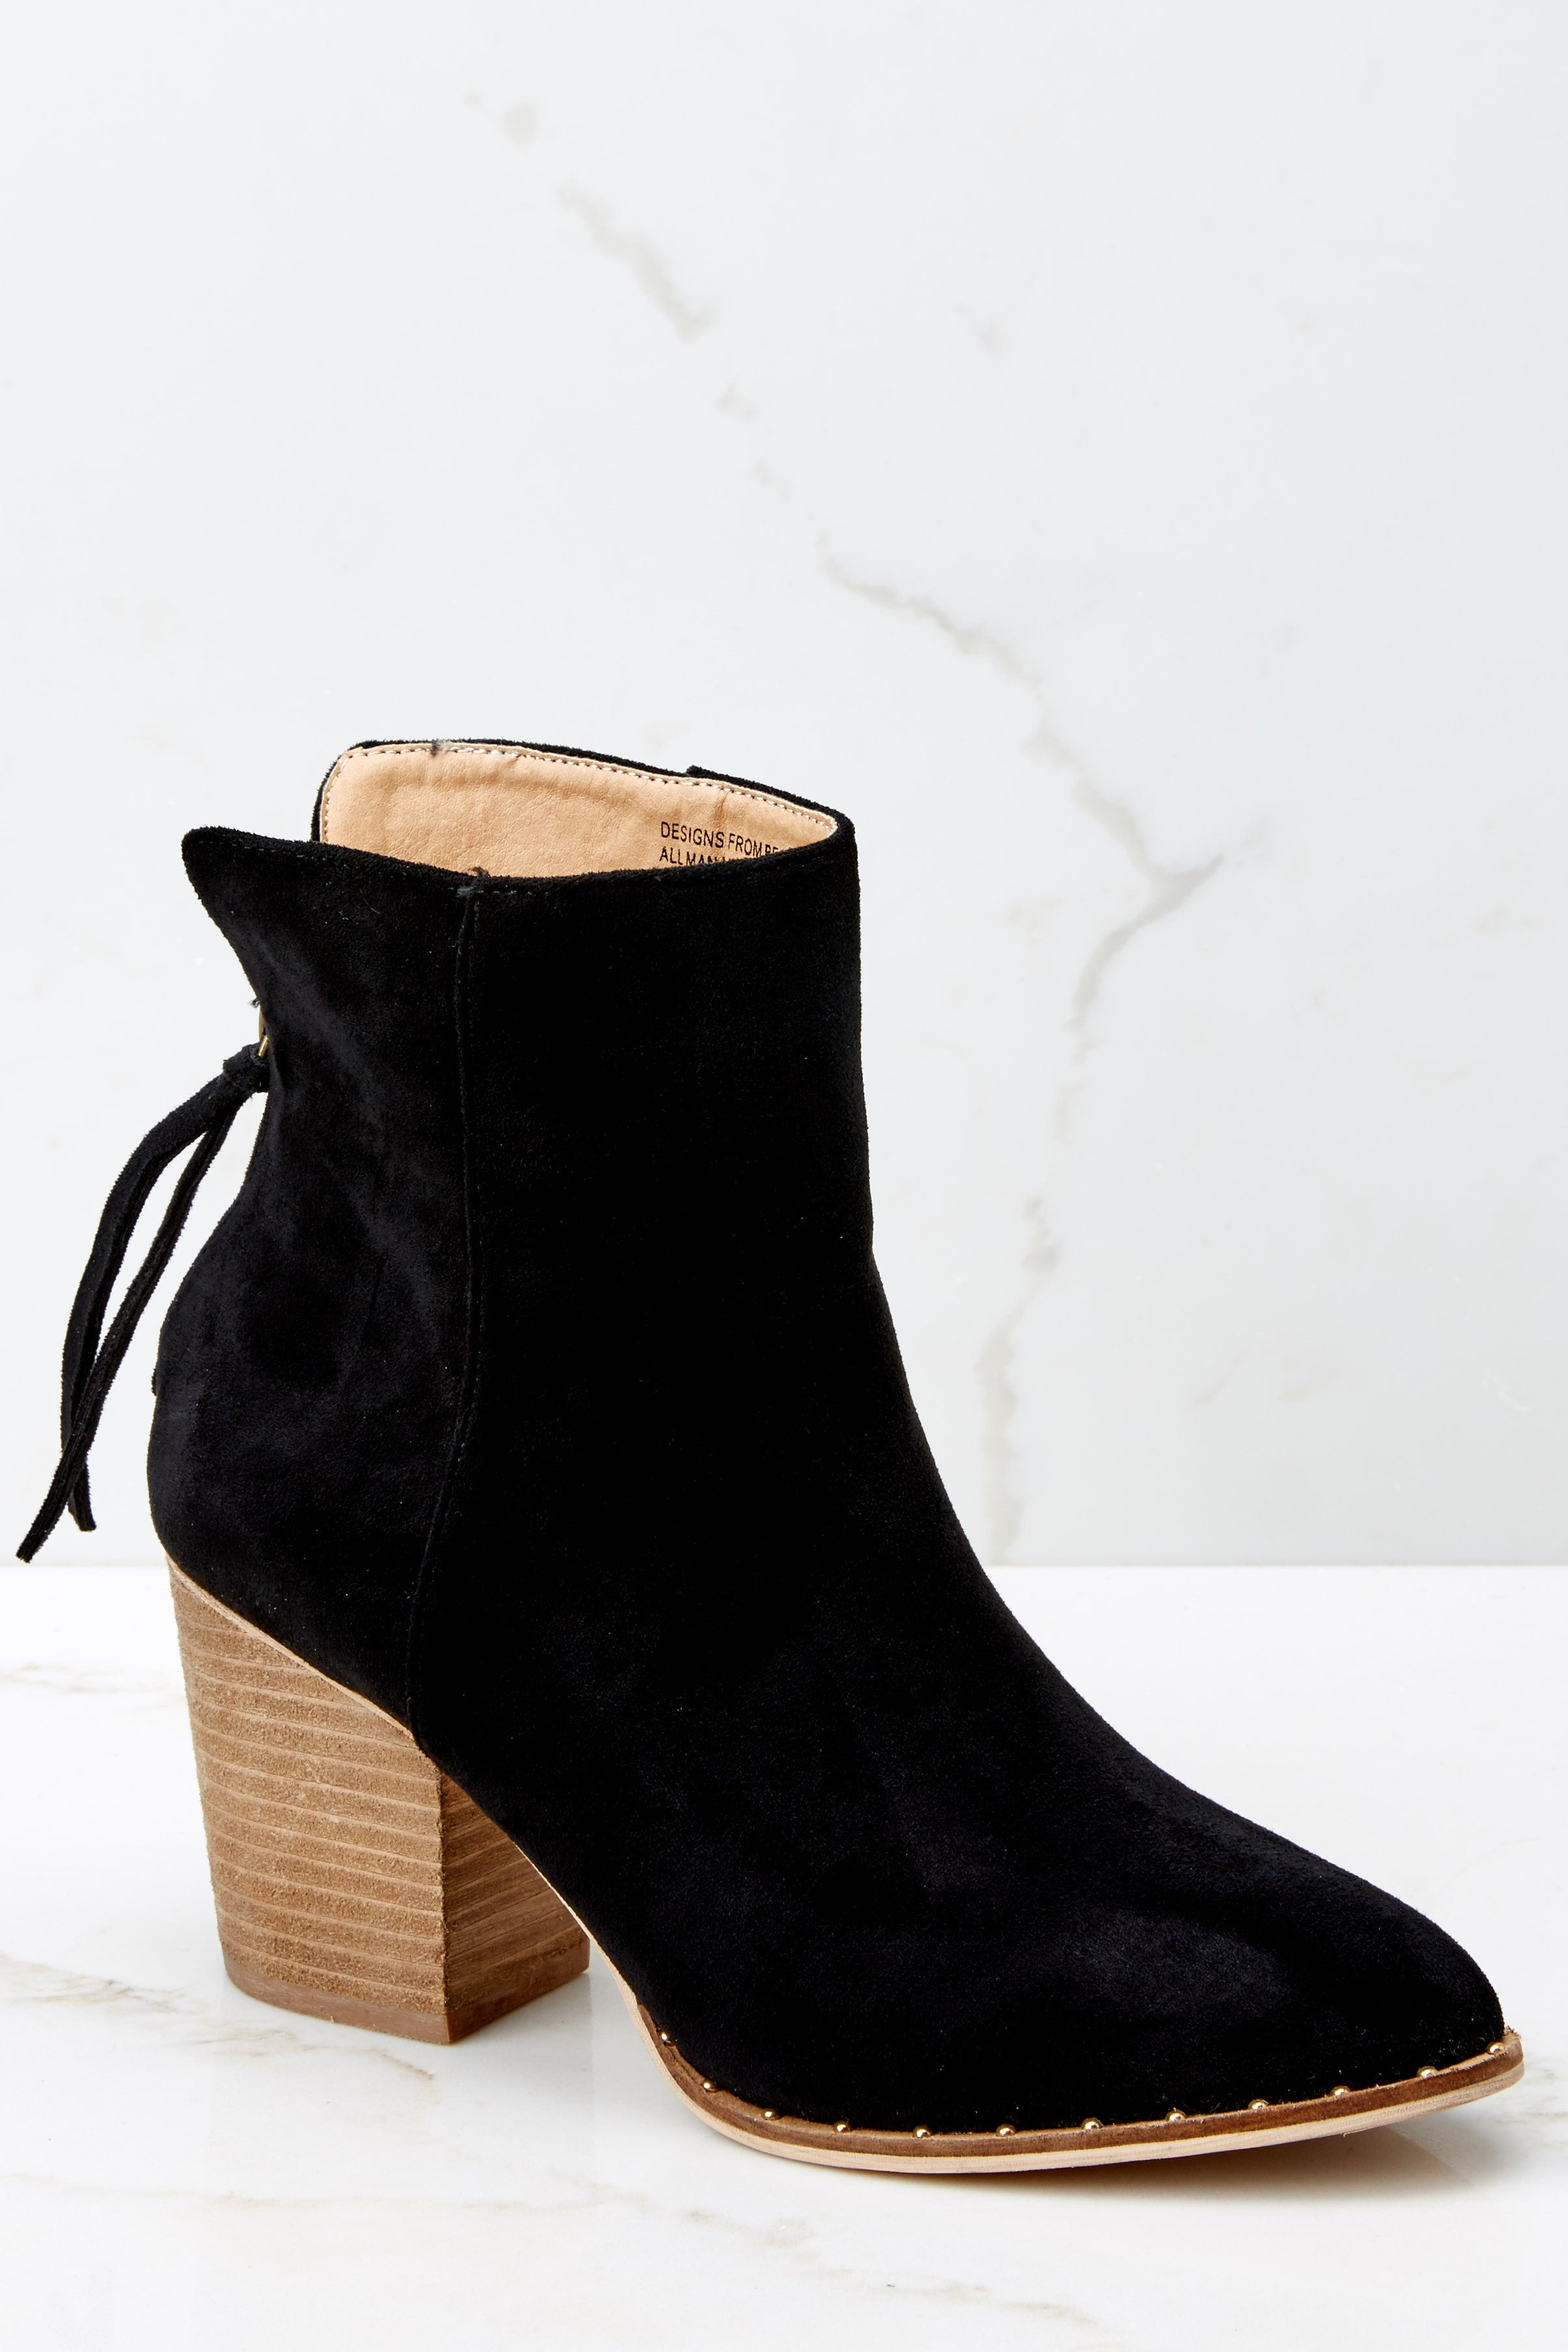 2 Taking These with Me Black High Heel Ankle Boots at reddressboutique.com